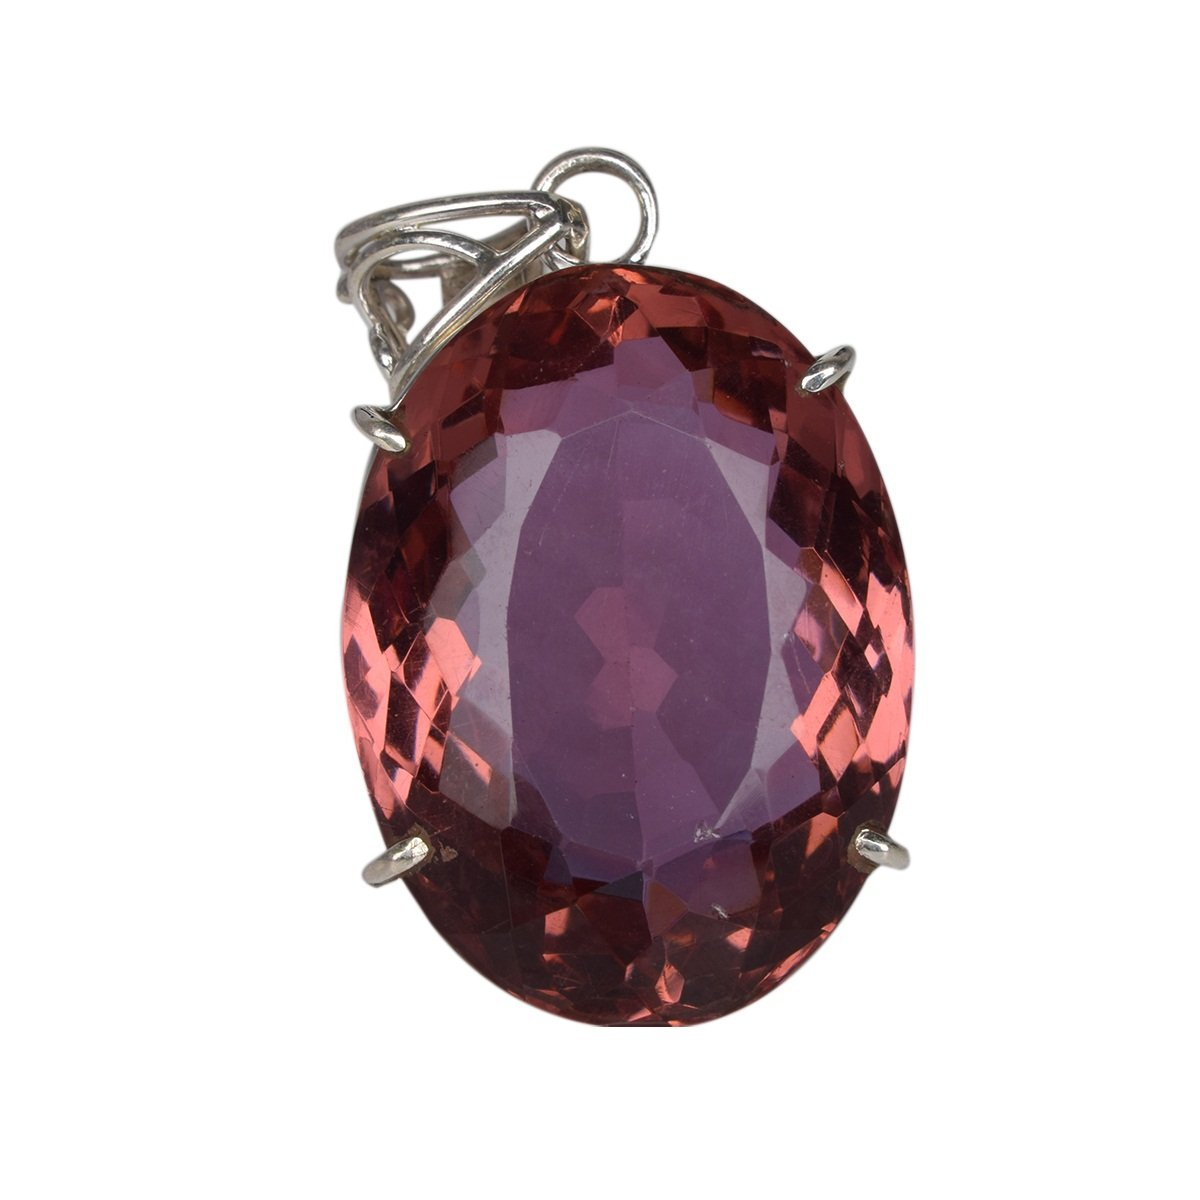 Oval Cut Color Change Alexandrite Necklace for Any Occasion DO-740 Gemhub Beautiful Alexandrite Necklace 97.35 Ct